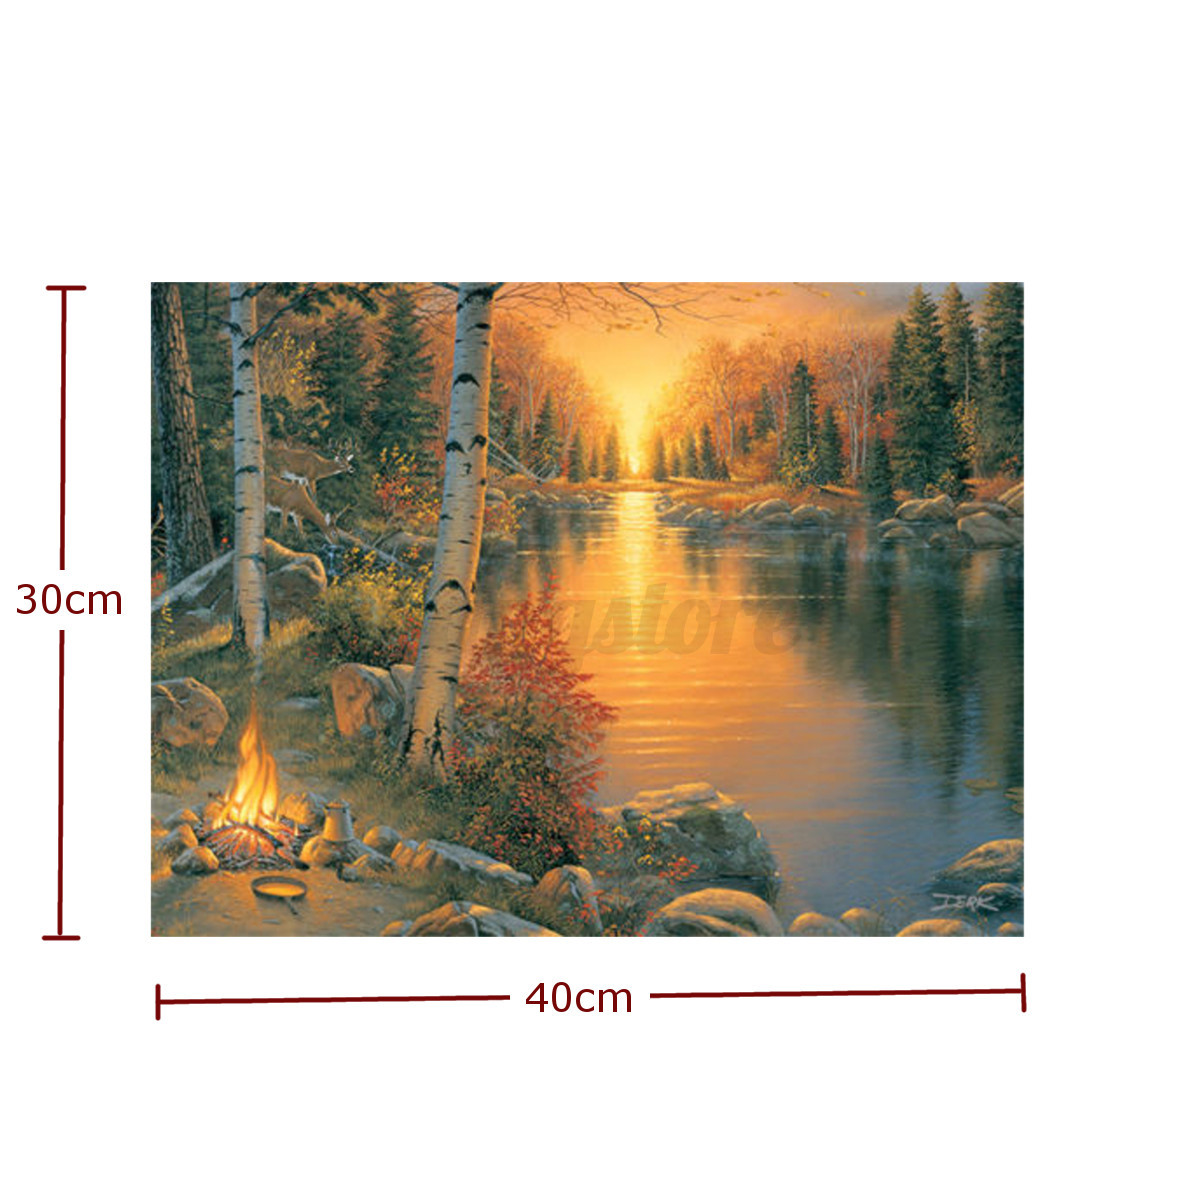 Light-up LED Lighted Christmas River Horses Wall Art Home Decor Canvas Picture eBay